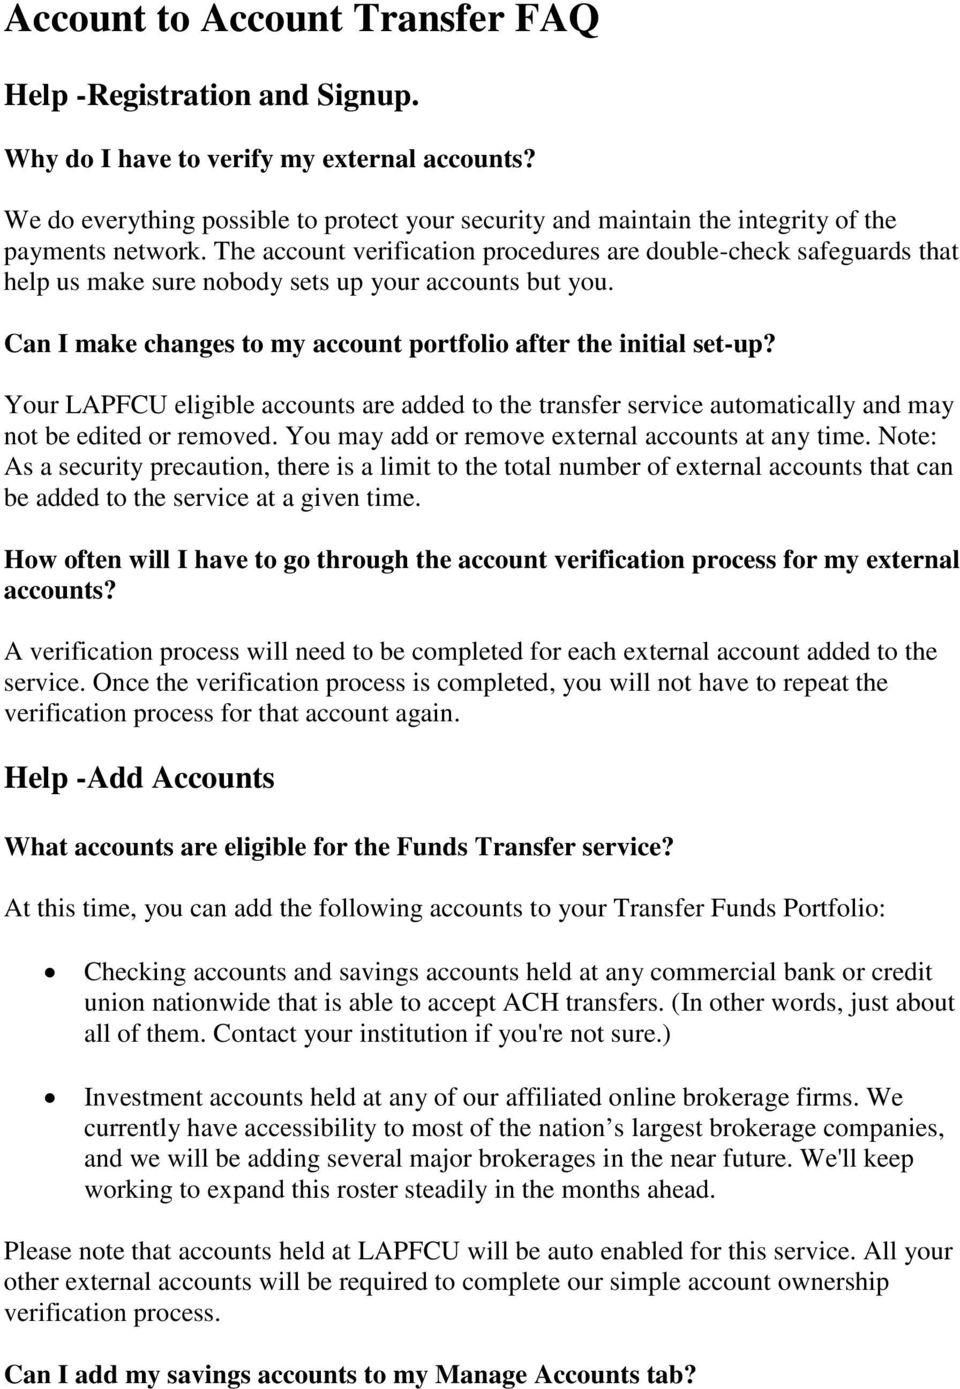 The account verification procedures are double-check safeguards that help us make sure nobody sets up your accounts but you. Can I make changes to my account portfolio after the initial set-up?